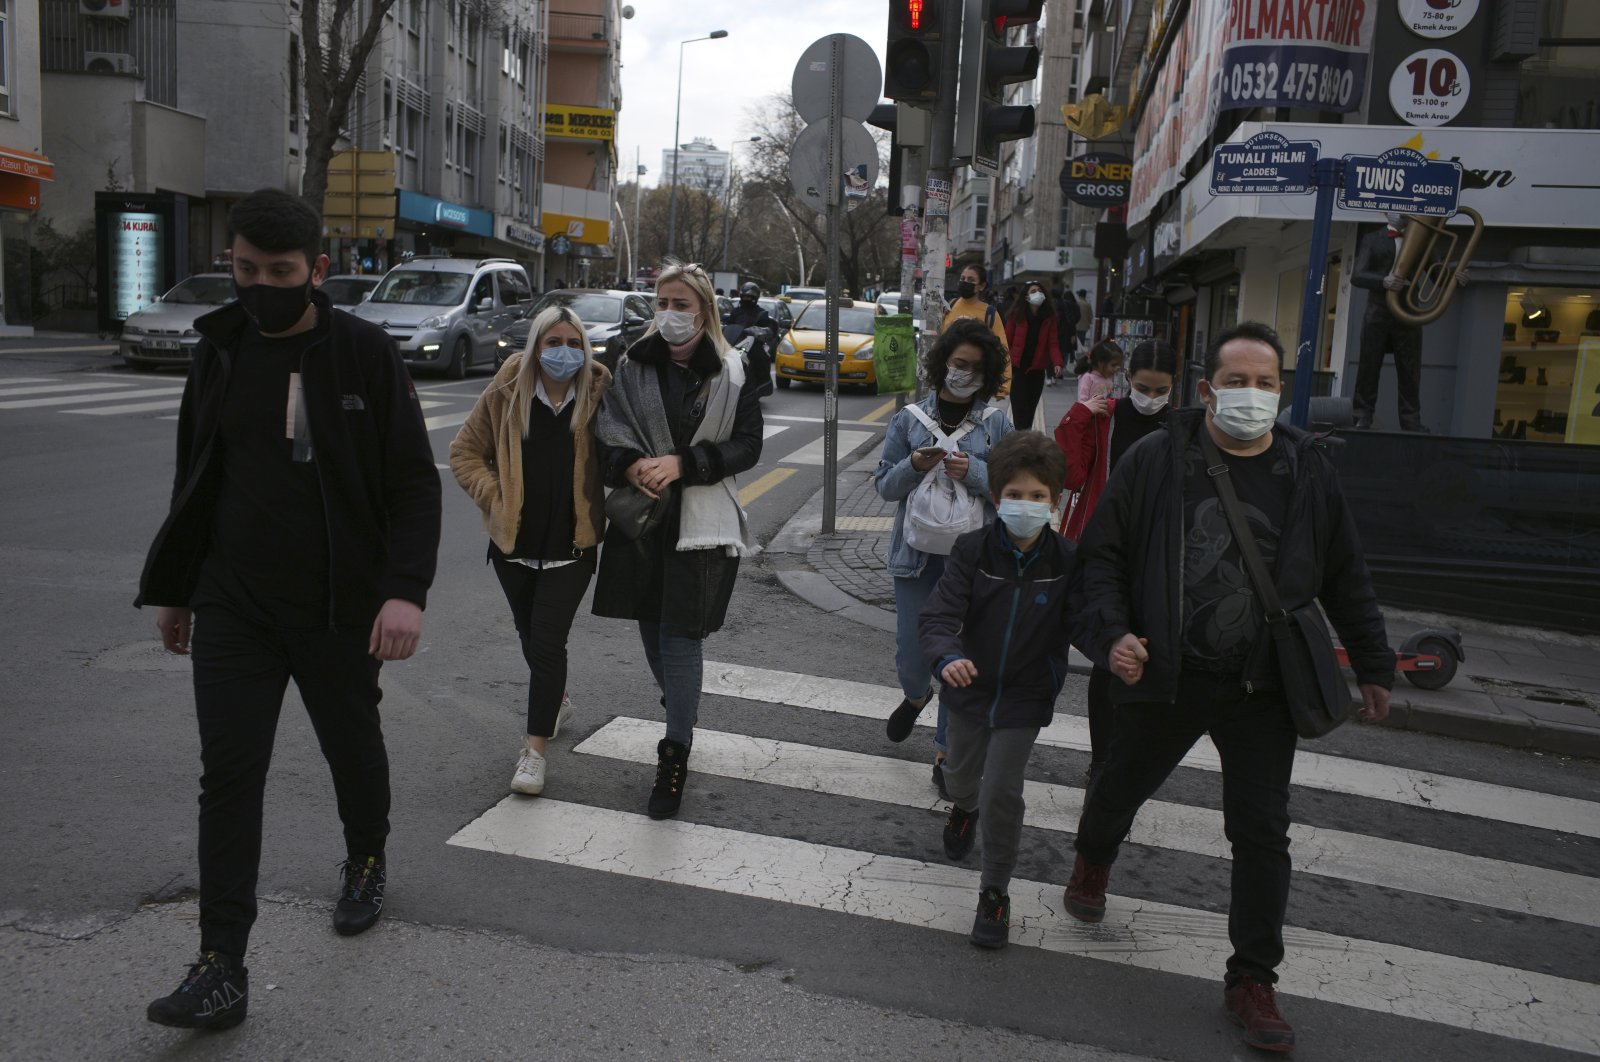 People wearing protective masks walk on a street in the capital Ankara, Turkey, Feb. 2, 2021. (AP Photo)